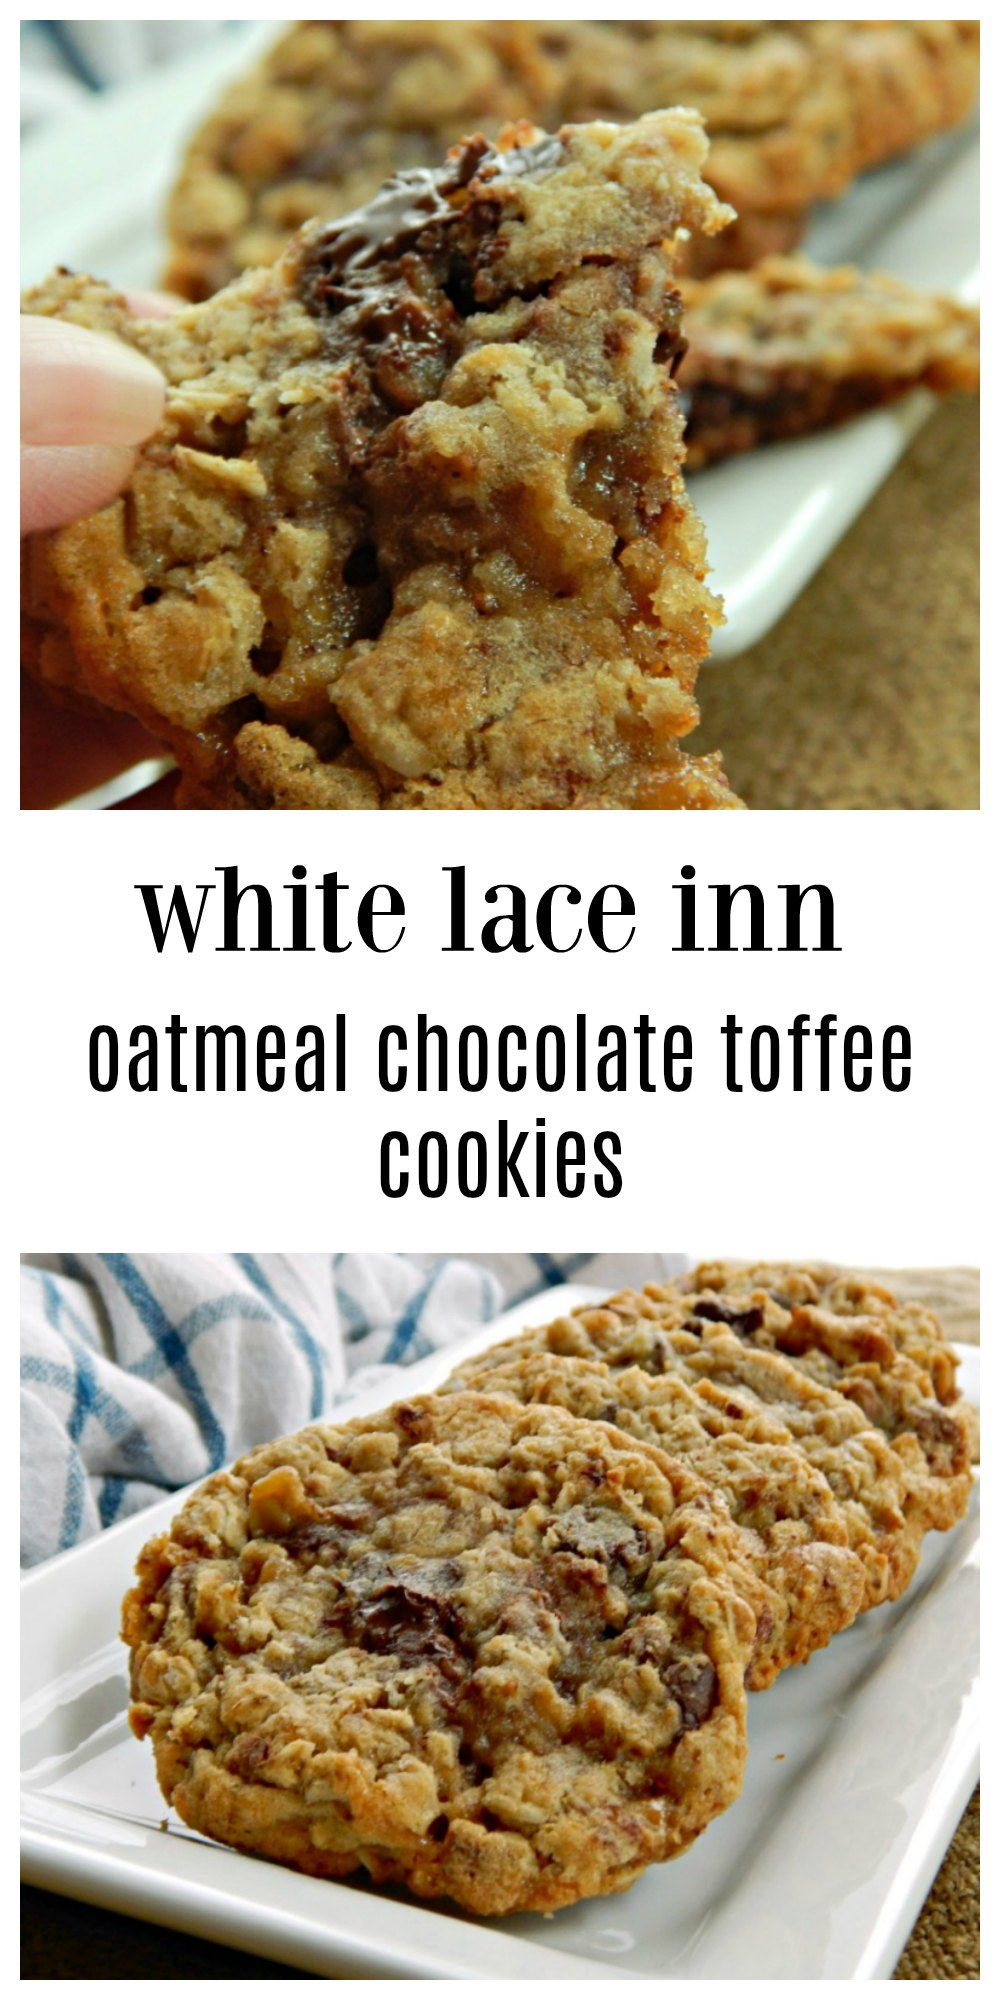 White Lace Inn Oatmeal Chocolate Toffee Cookies are fab! So full of chocolate chips & toffee bits and melt in your mouth ooey-gooeyness! #OatmealCookies #ChocolateChipToffeeOatmealCookies #ChocolateChipOatmealCookies #ChristmasCookies